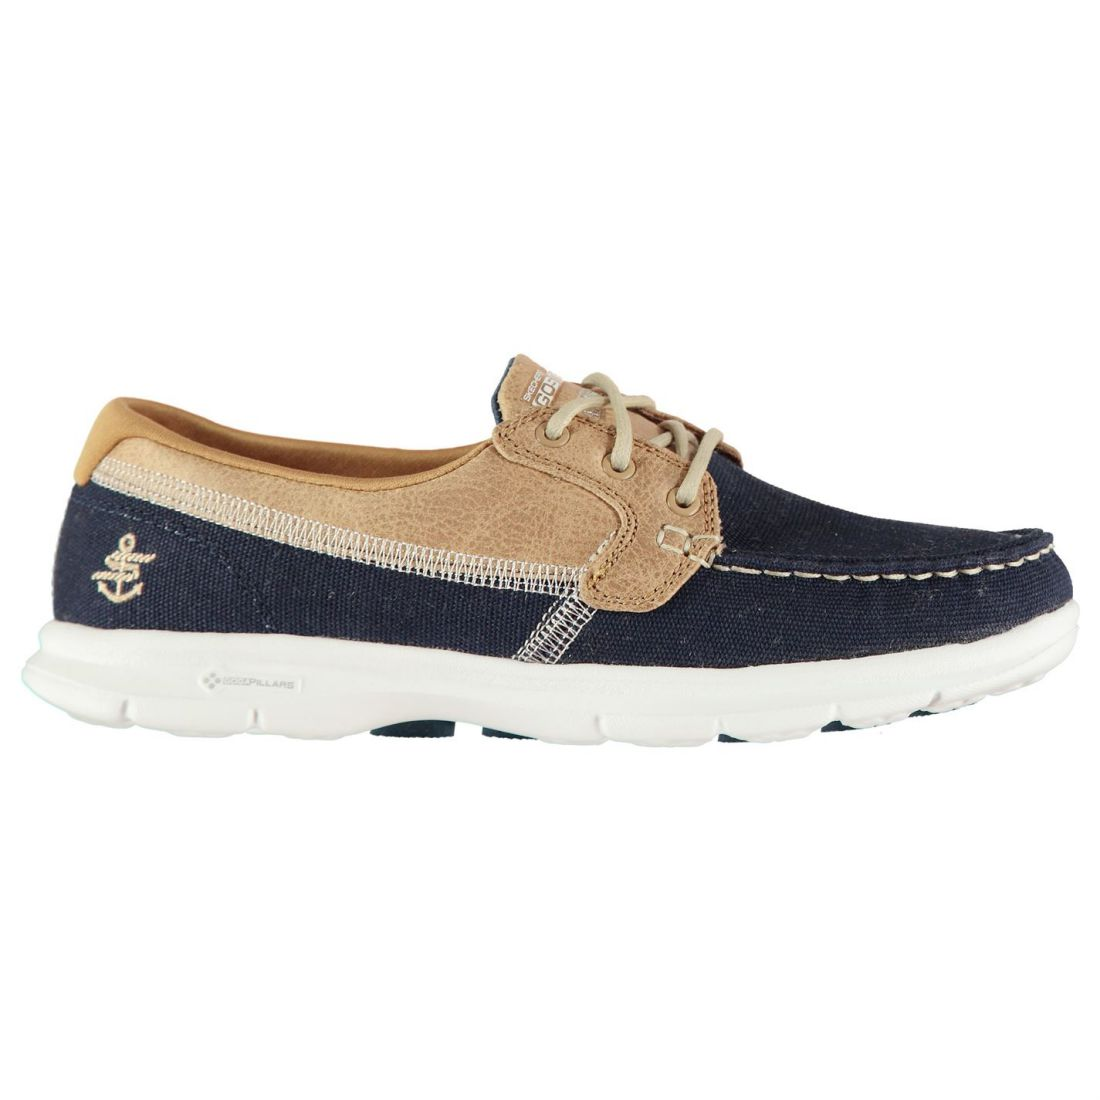 cde73202b3c75 Skechers Womens Goga Shore Shoes Casual Lace Up Lightweight Everyday ...